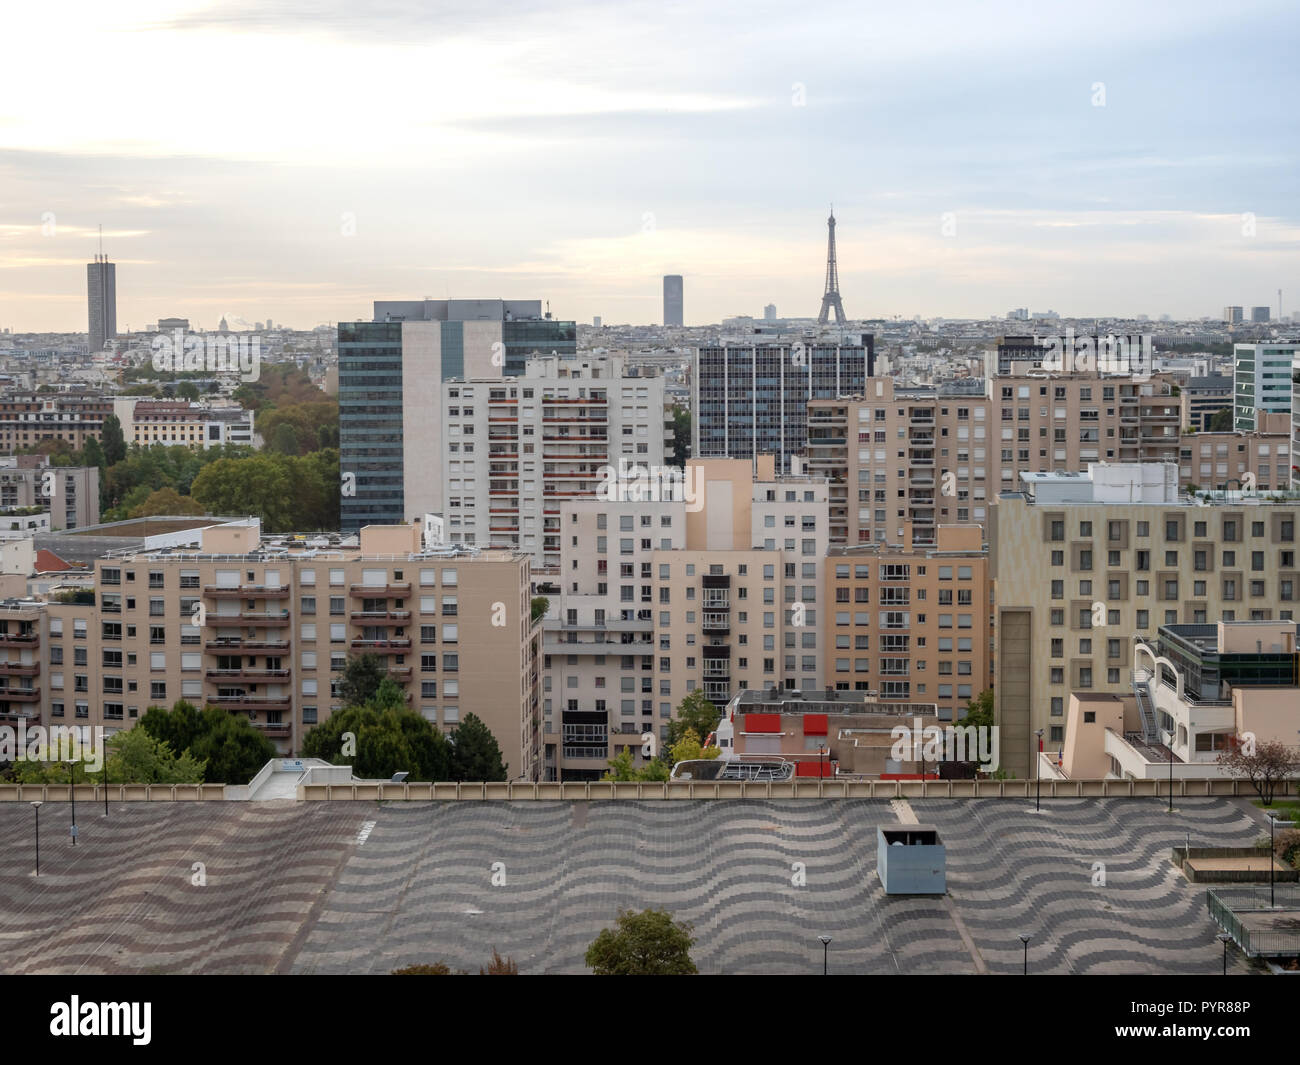 Aerial View of Downtown PAris with Eiffell Tower in the distance - Stock Image